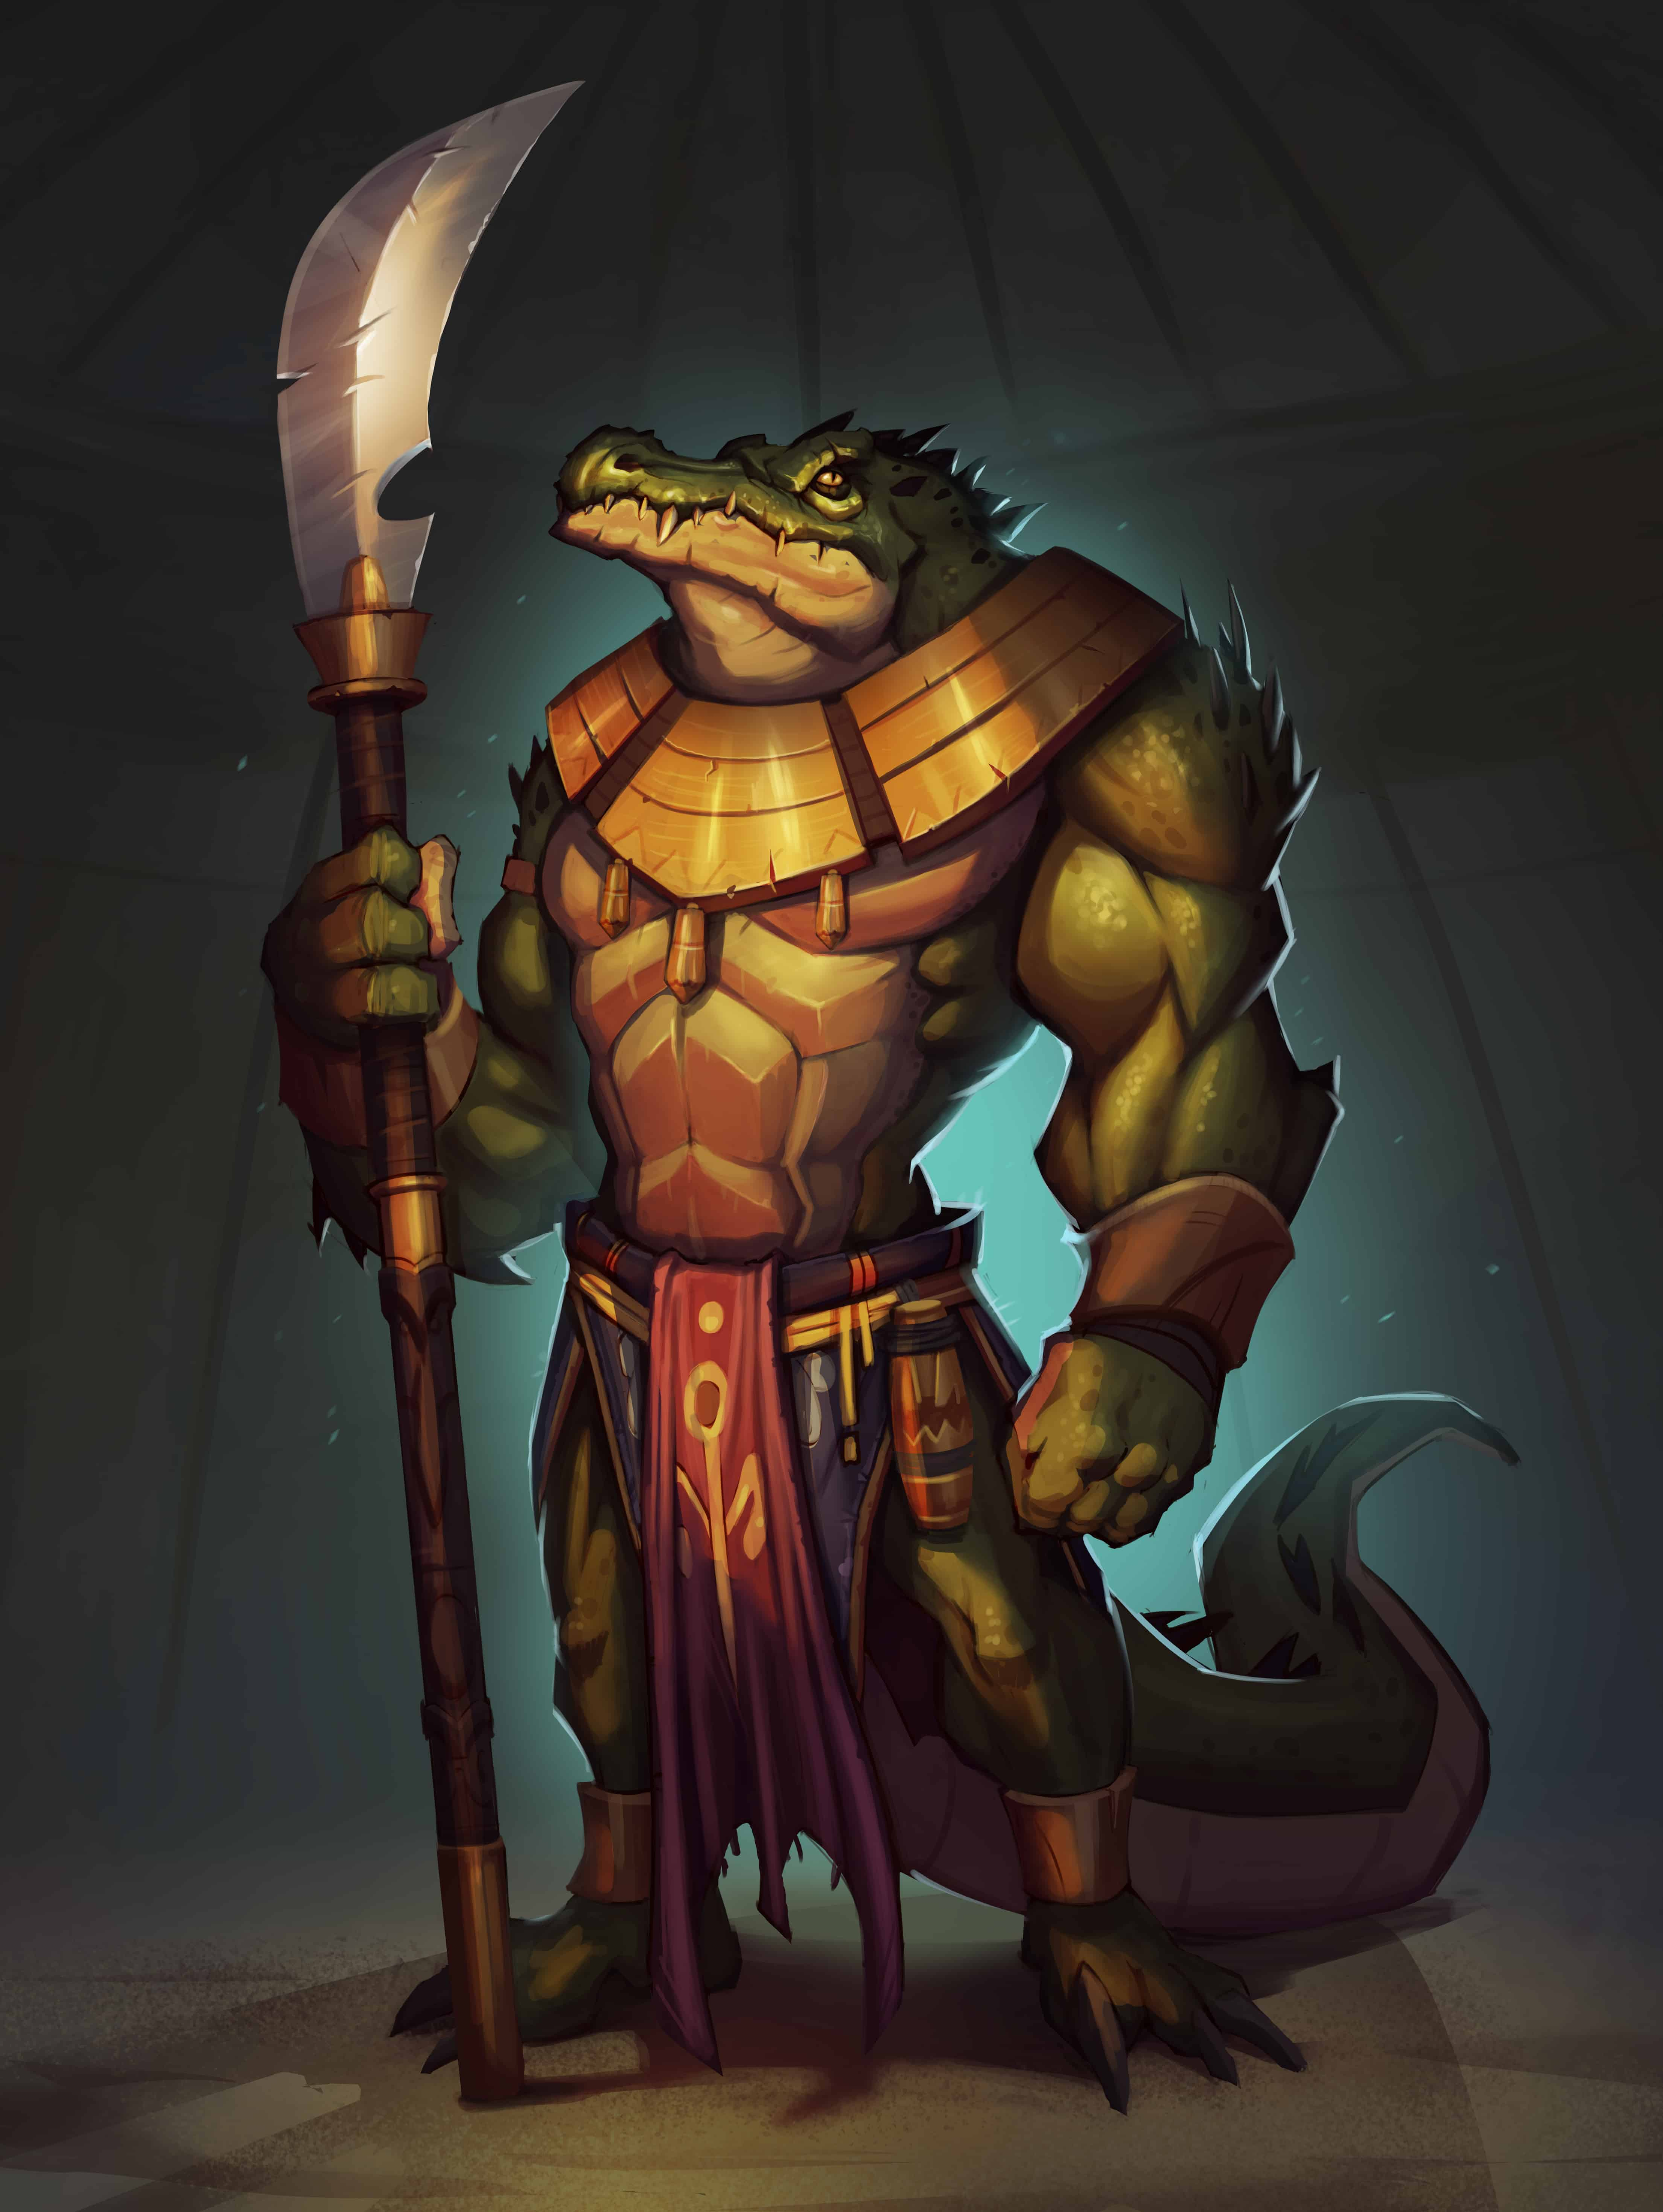 Toothblade Chosen crocodile card art from Untamed Feral Factions